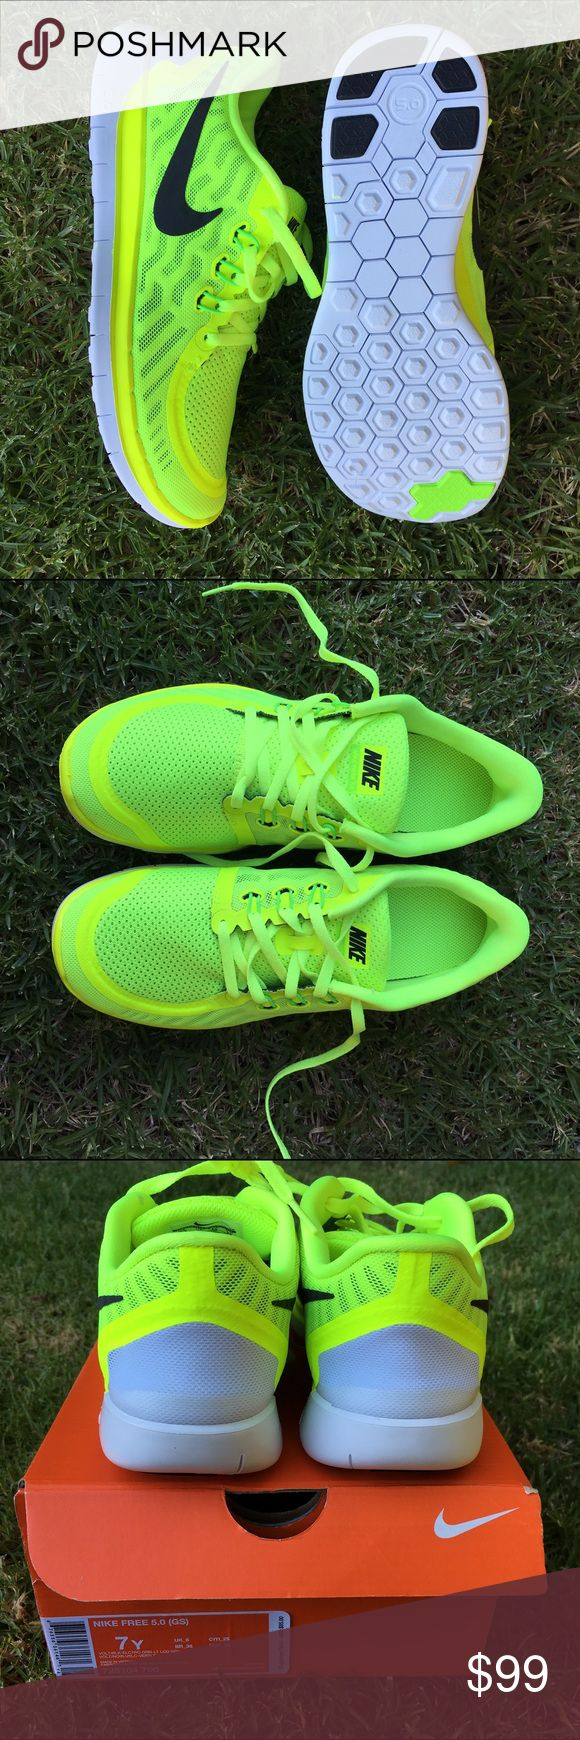 """NIKE ⚡️ """"FREE RUN 5.0"""" SZ 8 women 6.5 youth Volt ⚡ neon! best workout shoe ever! NEW NEVER USED """"Free run 5.0"""" size 6.5 youth (equivalent to a woman's size 8). No filters on any of the photos. Mix between neon green and neon yellow (pics are not filtered white background is indoors with natural light only and grass pics are outside taken in the shade. My foot modeling the shoe ) No box. Bundle items to save.  Nike Shoes Sneakers"""